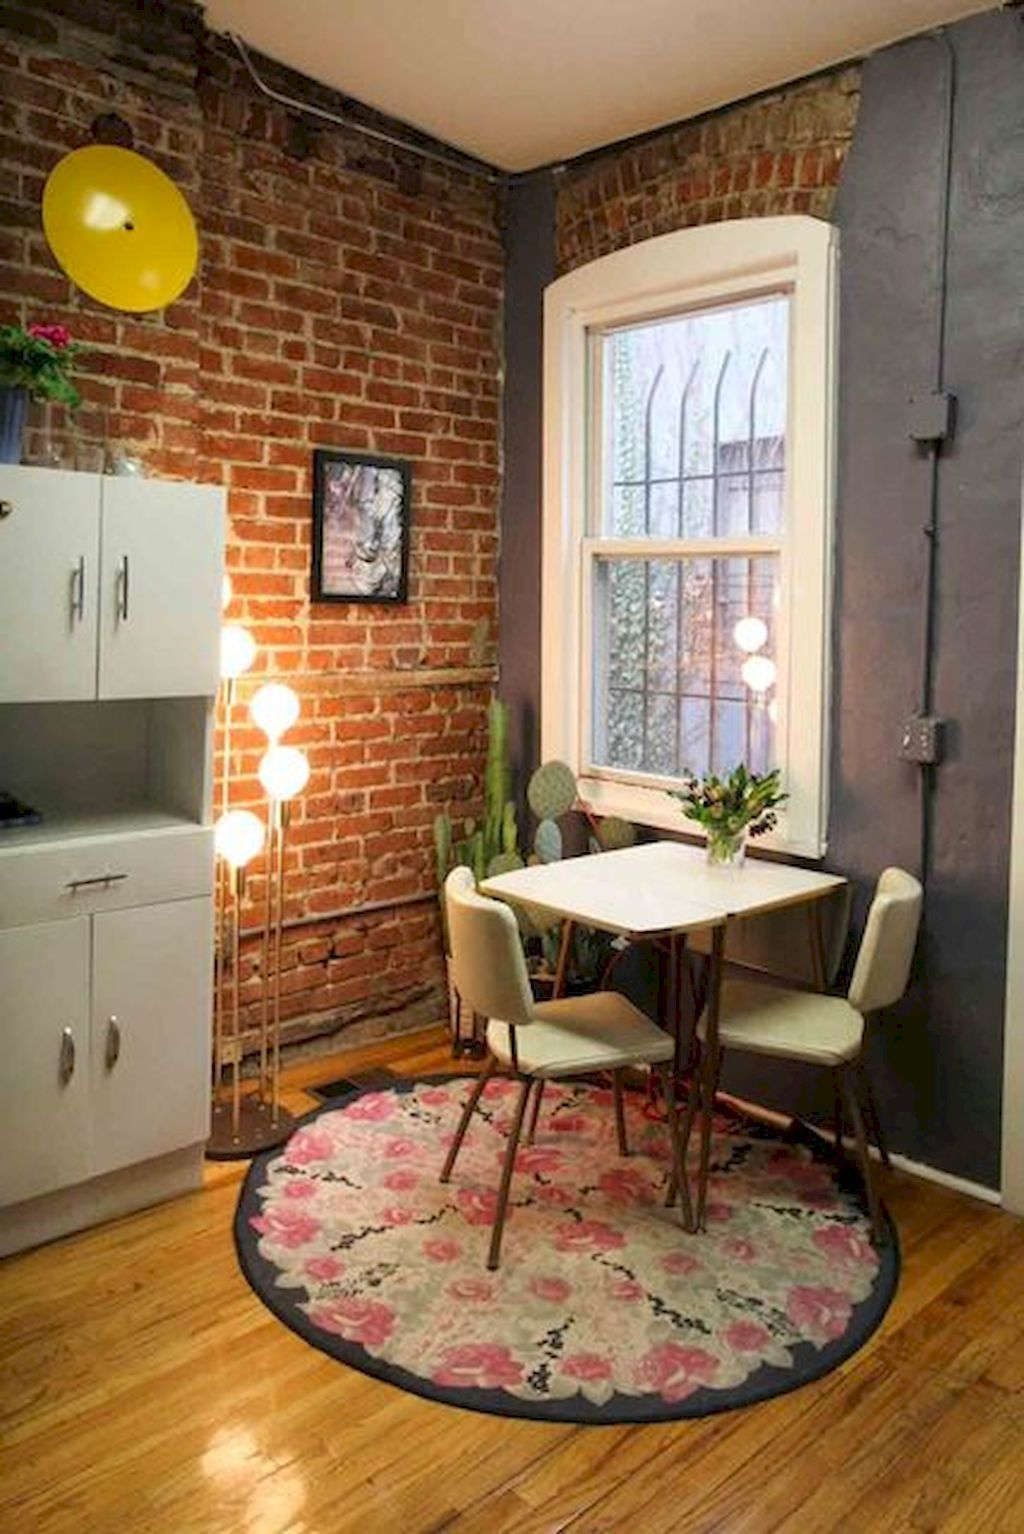 Gorgeous 65 Smart and Creative Small Apartment Decorating Ideas on A ...